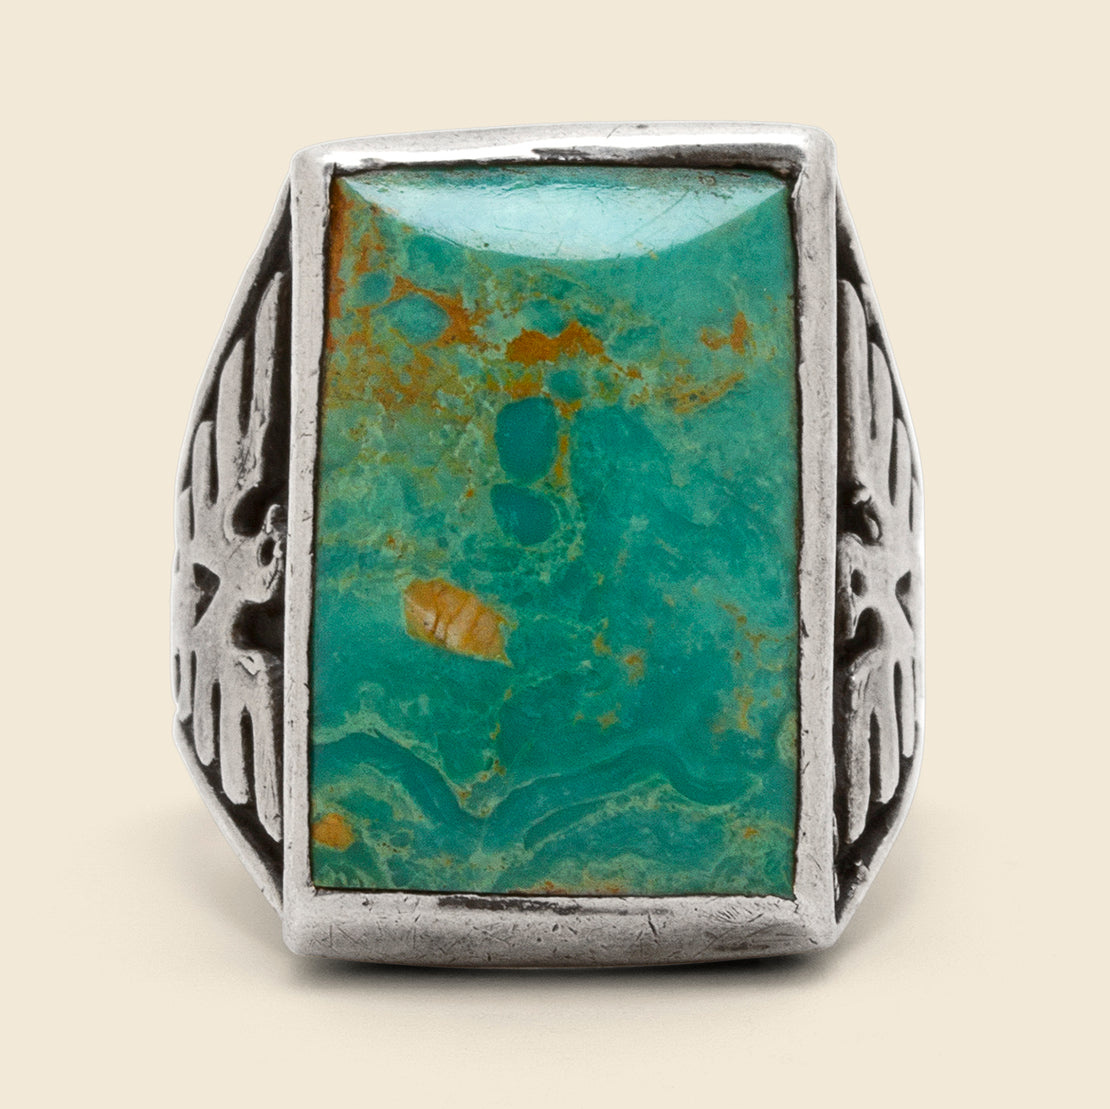 Turquoise Stone Thunderbird Band Ring - Sterling